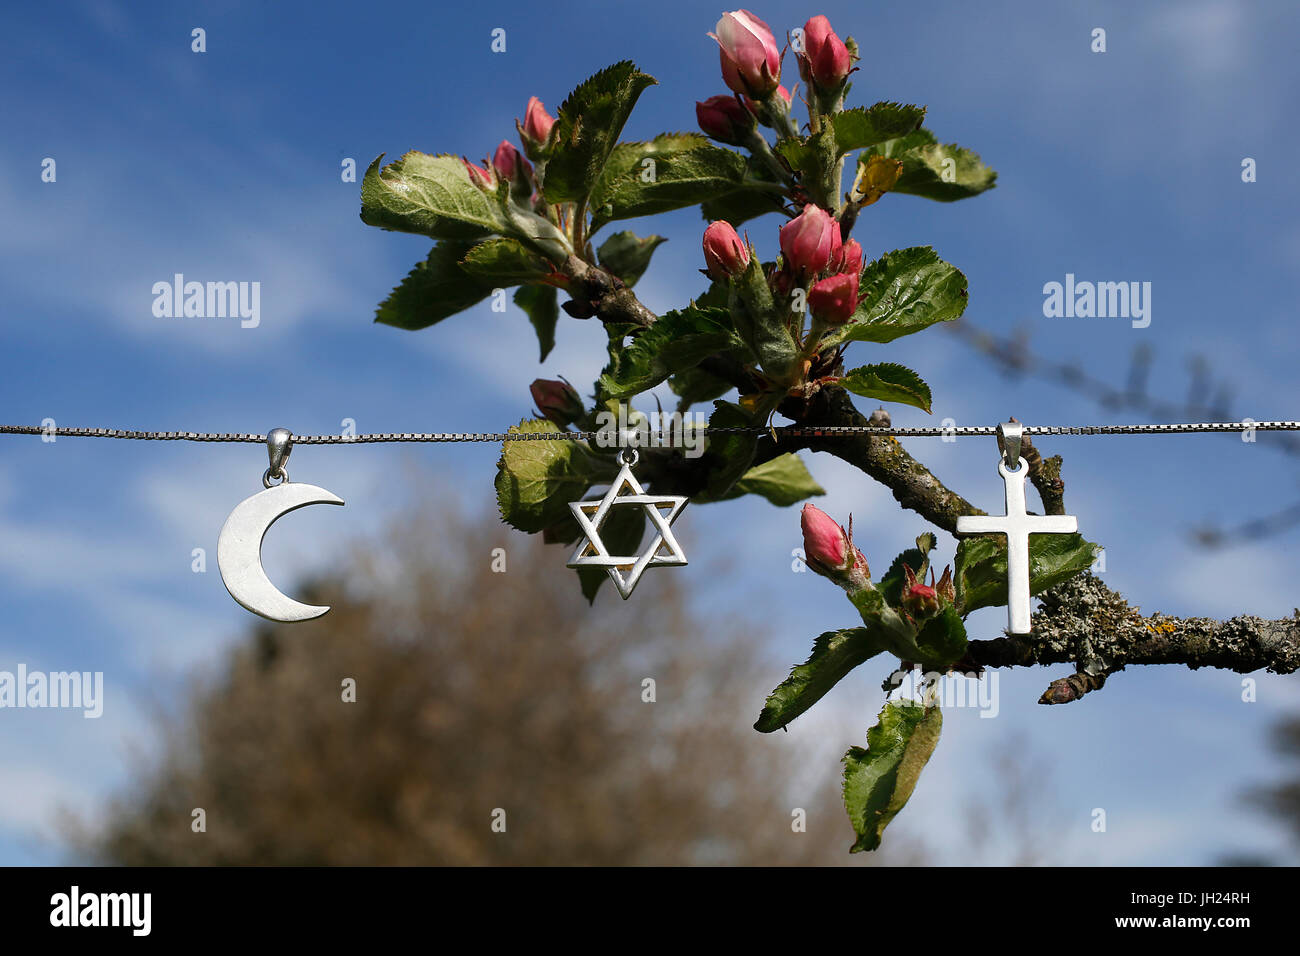 Symbols of islam, judaism and christianity. - Stock Image